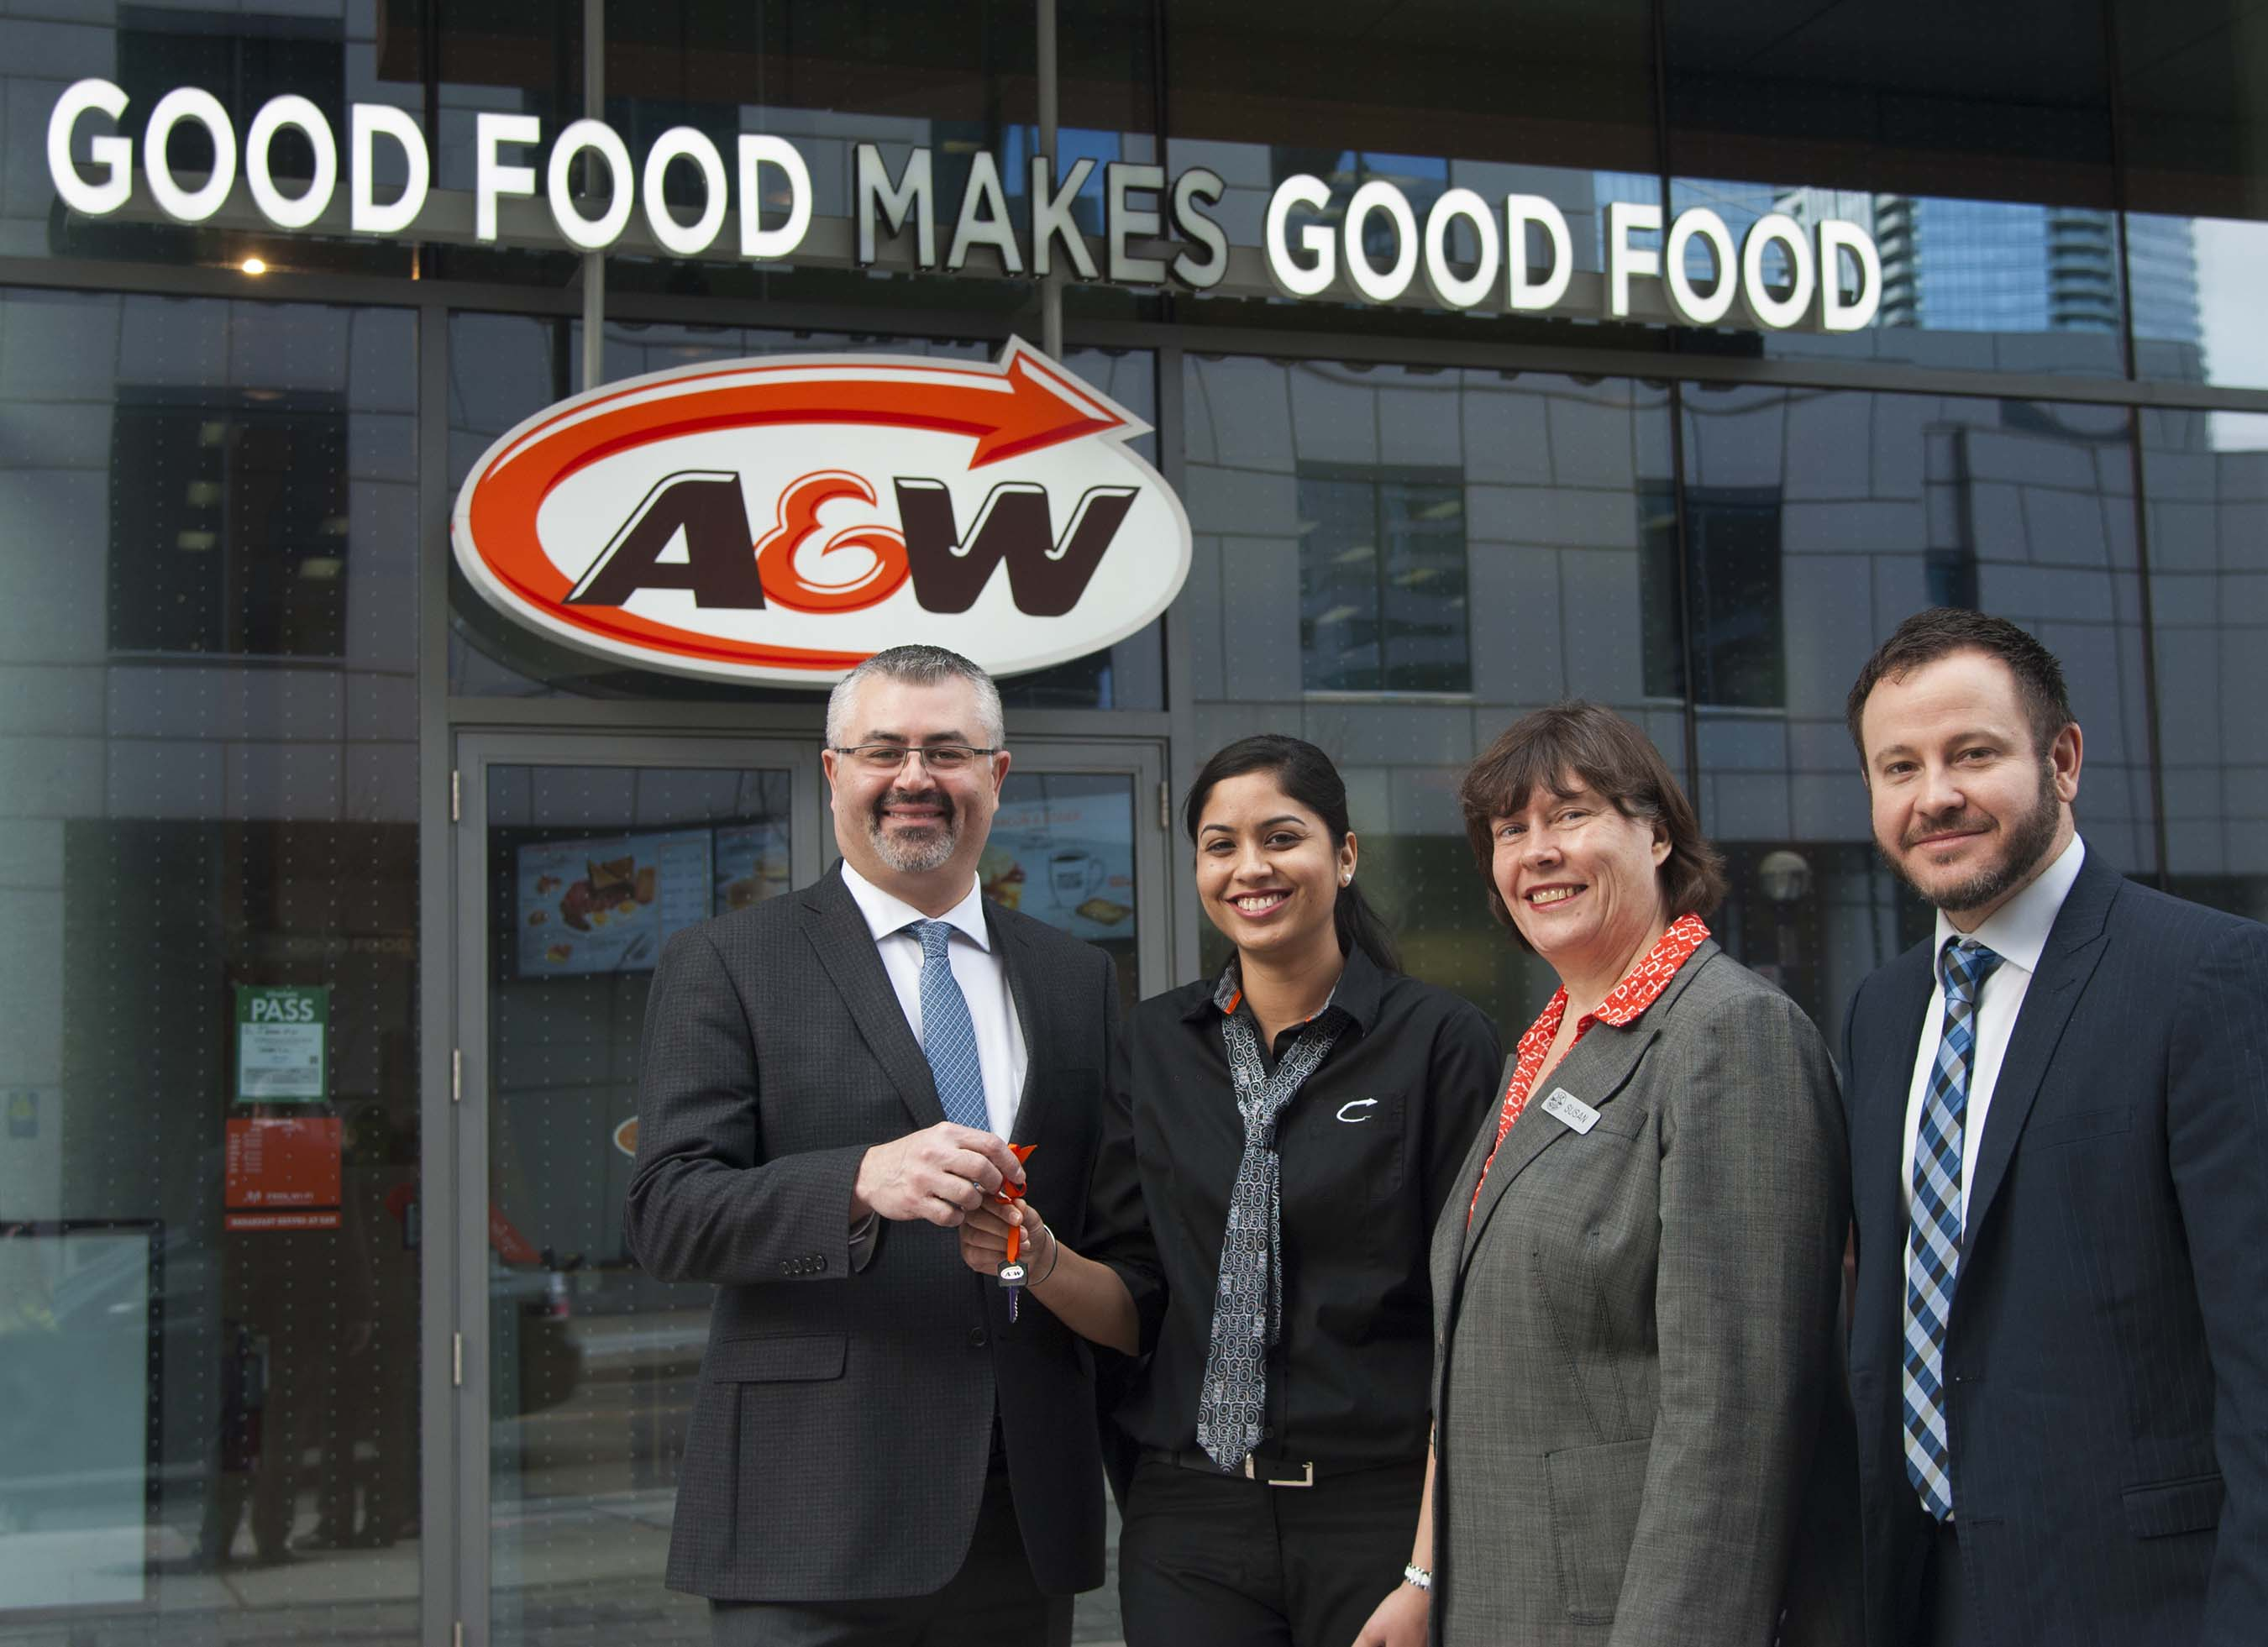 Best Restaurant Franchises 2020 A&W Announces Significant Growth Plans to Award More than 200